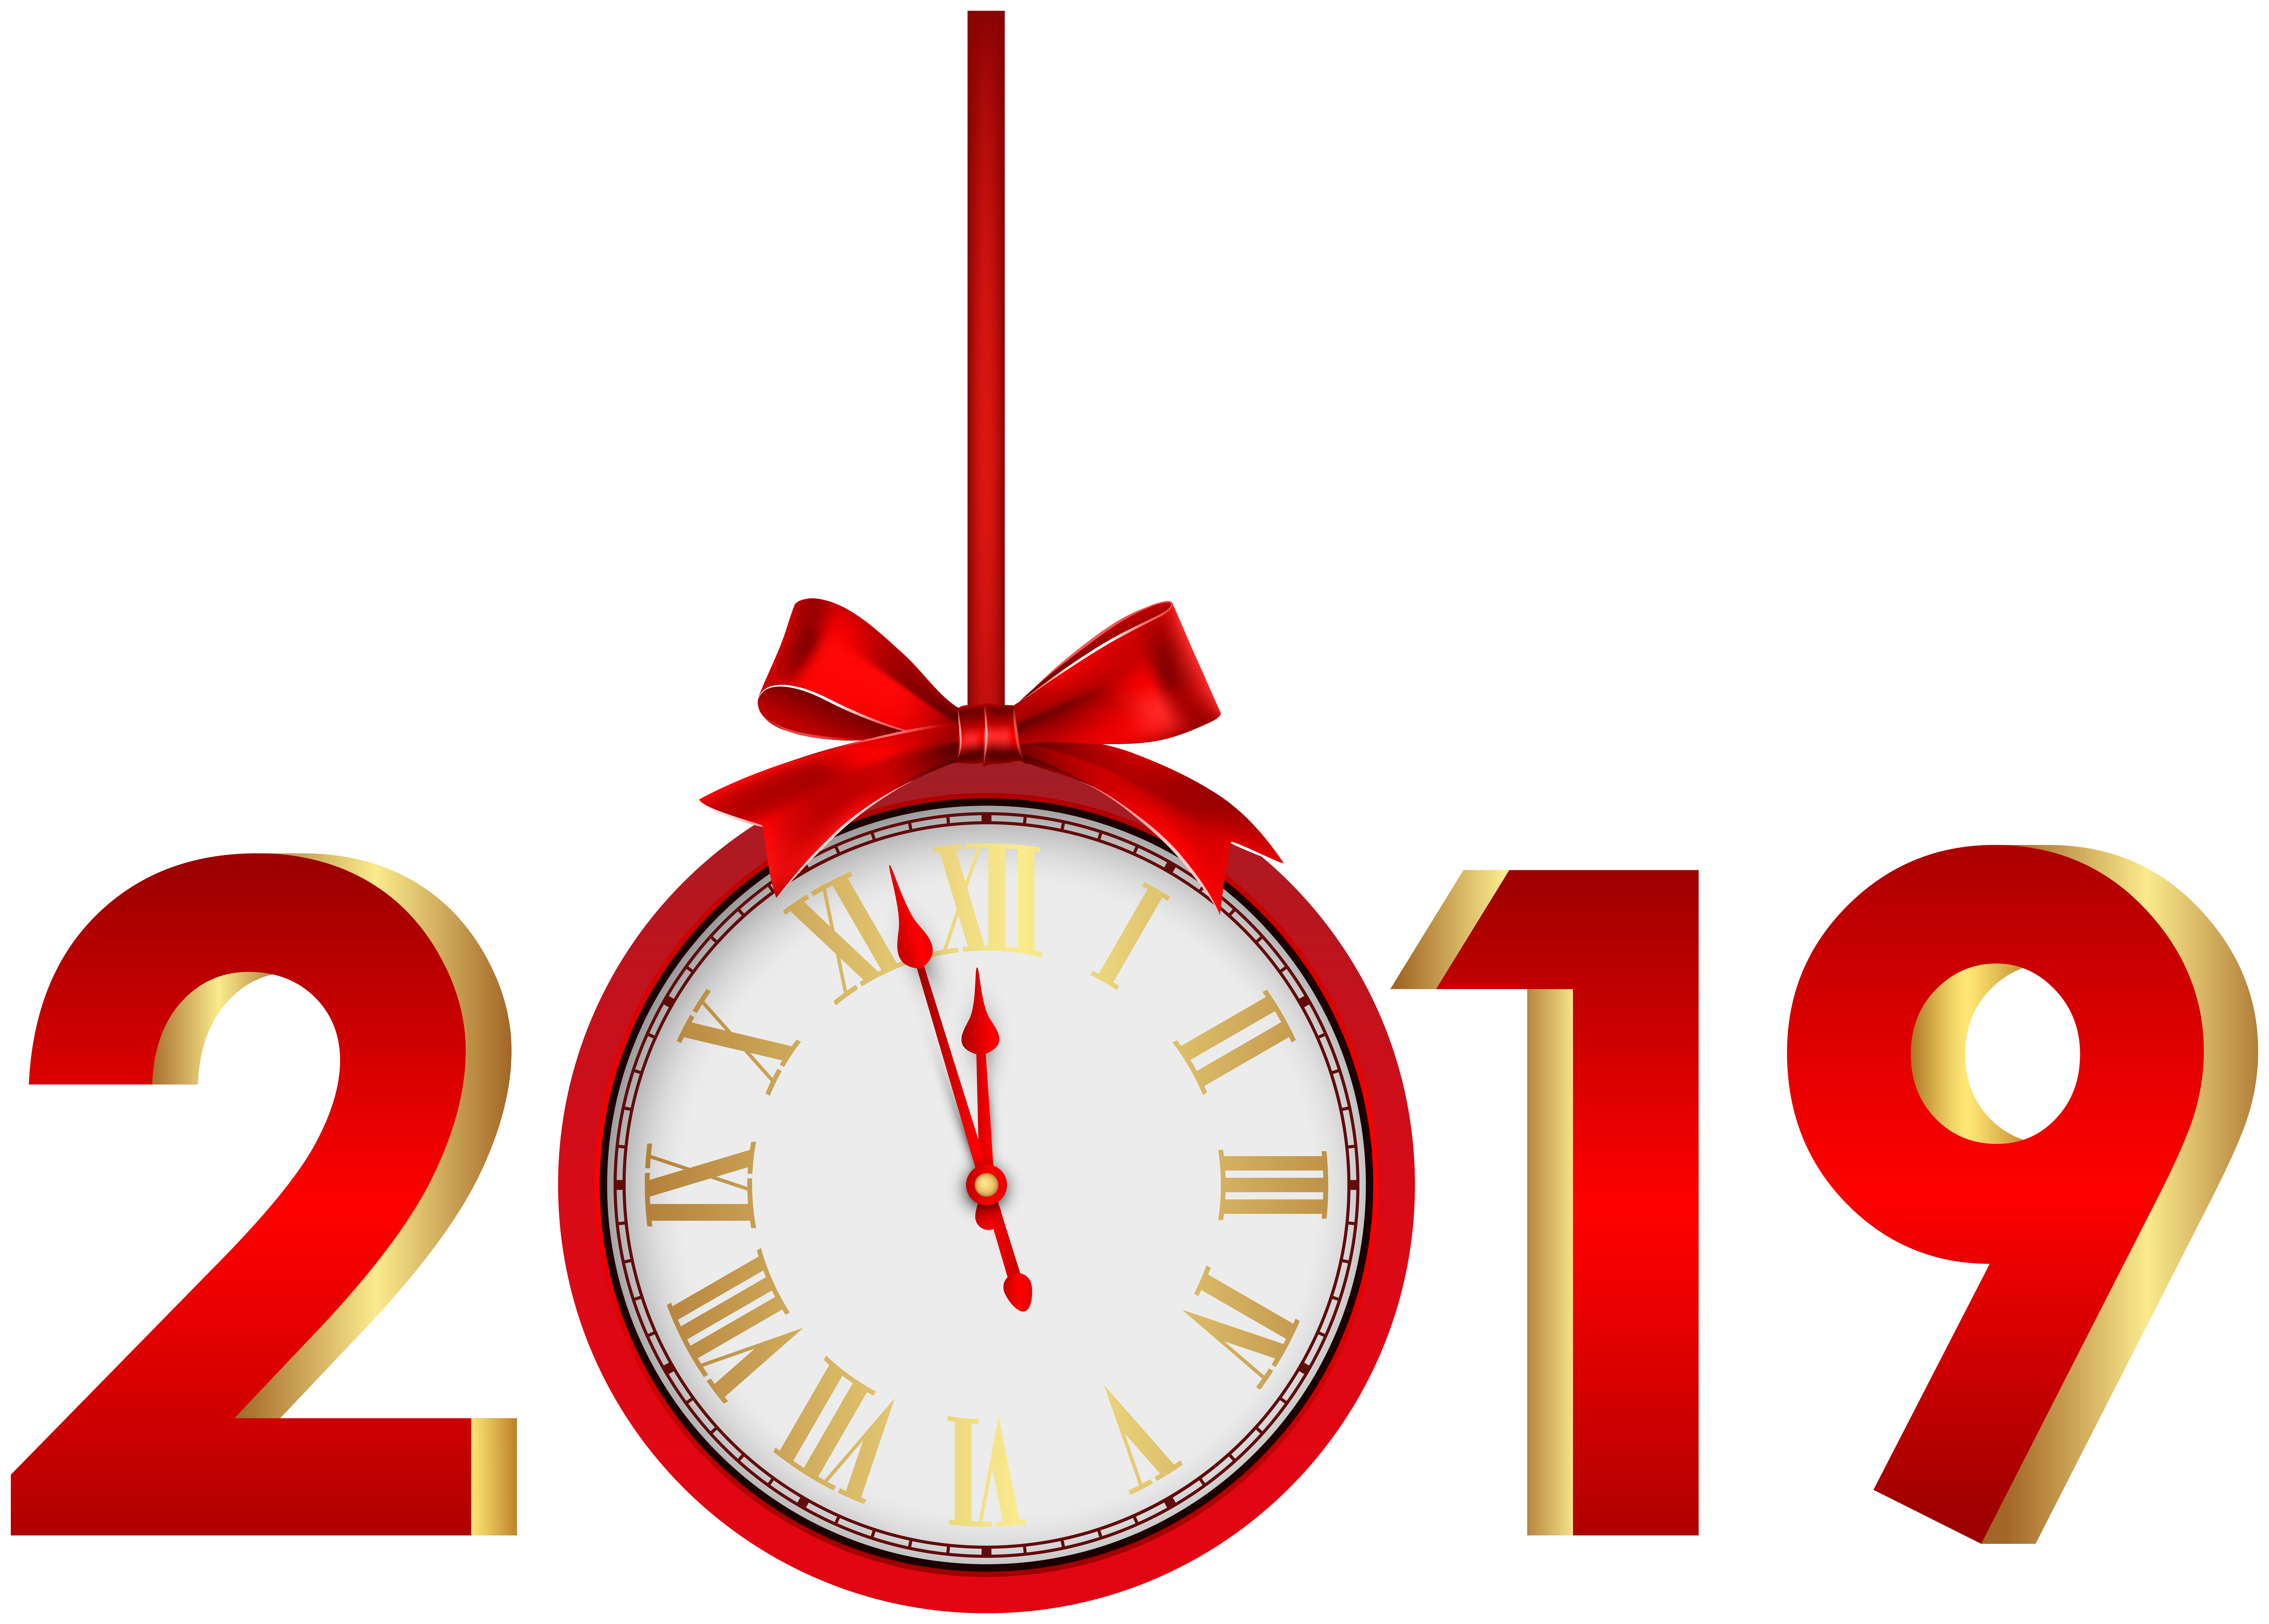 2019 in red clipart banner royalty free 2019 with Clock Red PNG Clip Art Image | Gallery Yopriceville ... banner royalty free